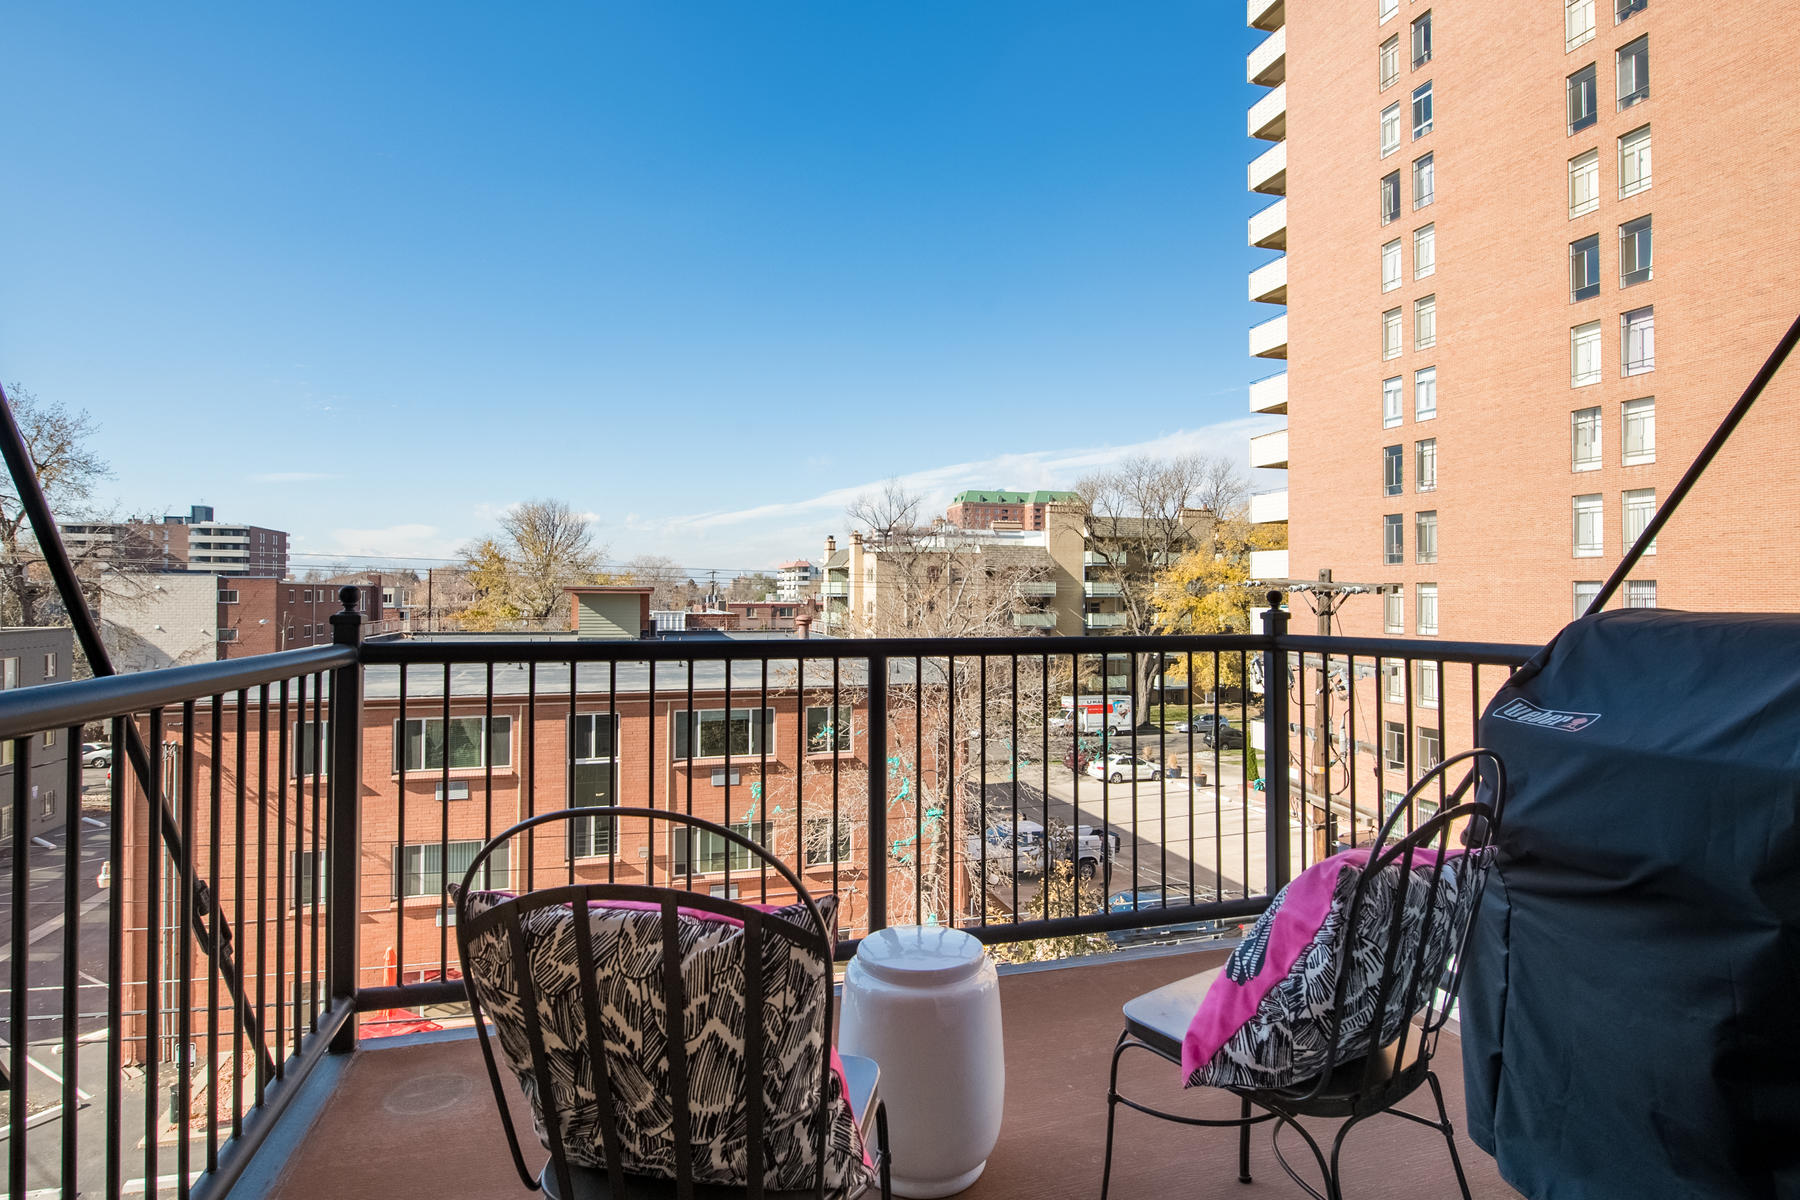 Additional photo for property listing at Incredible Opportunity! 25 N Downing St #1-305 Denver, Colorado 80218 Estados Unidos